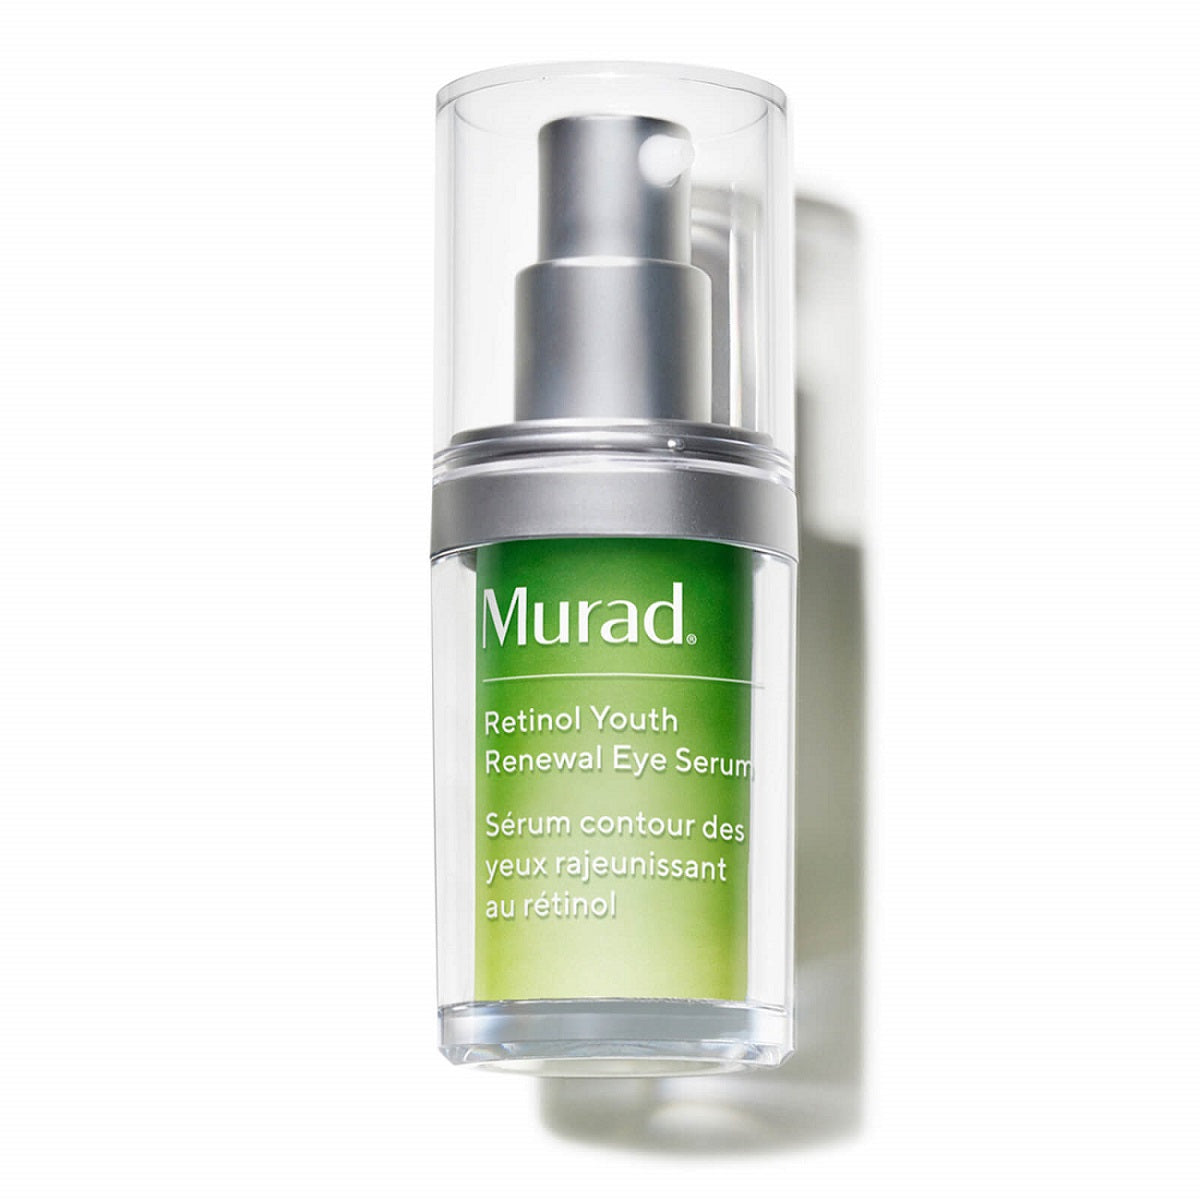 Murad Resurgence Retinol Youth Renewal Eye Serum